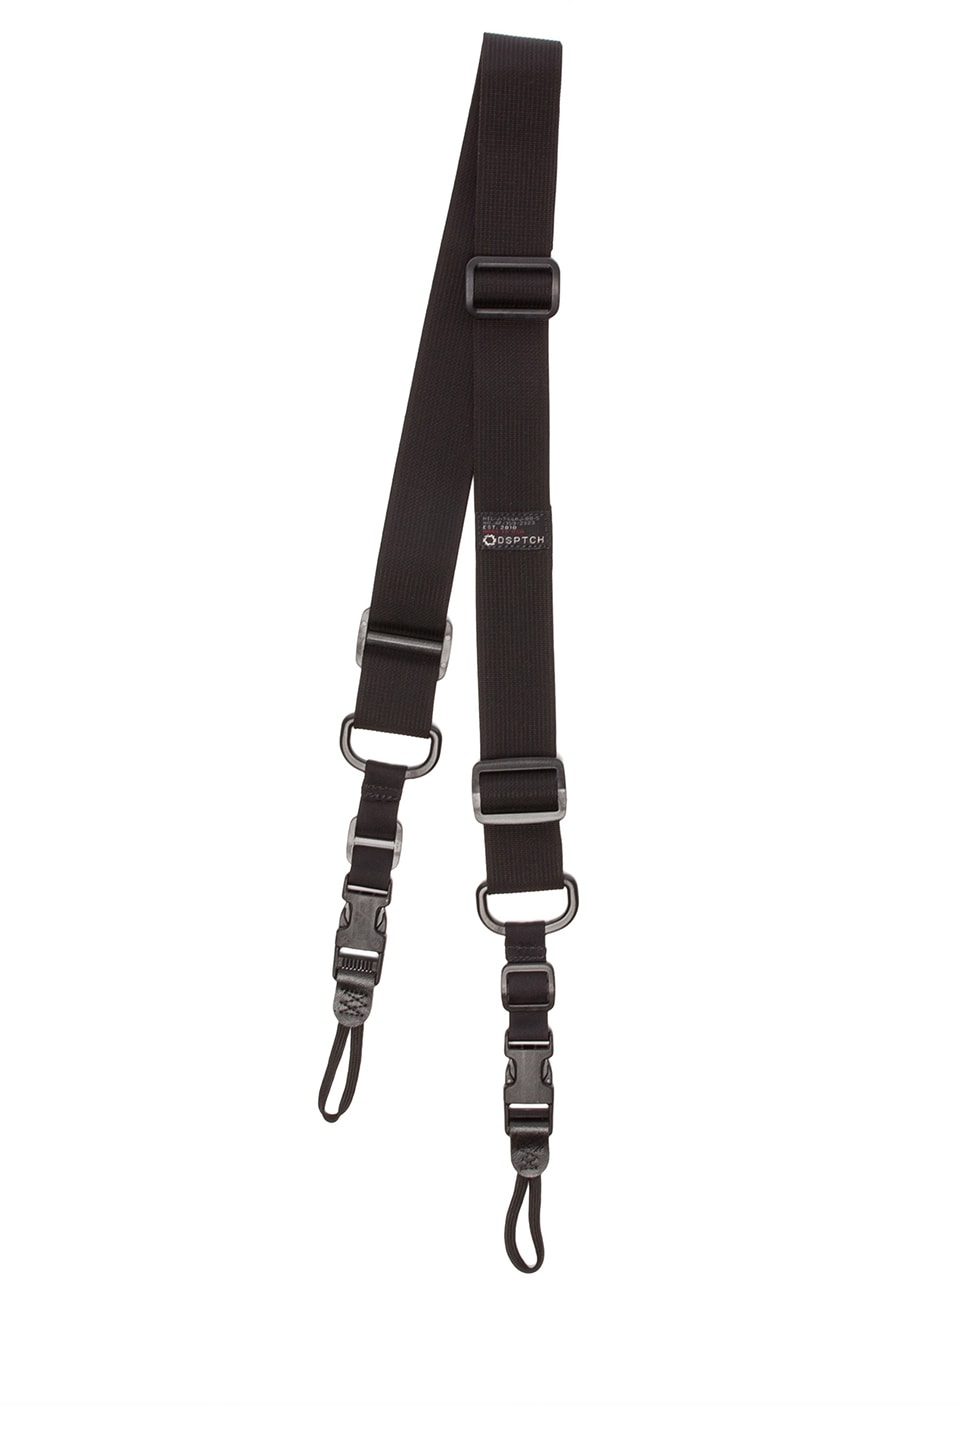 DSPTCH Heavy Camera Sling in Black